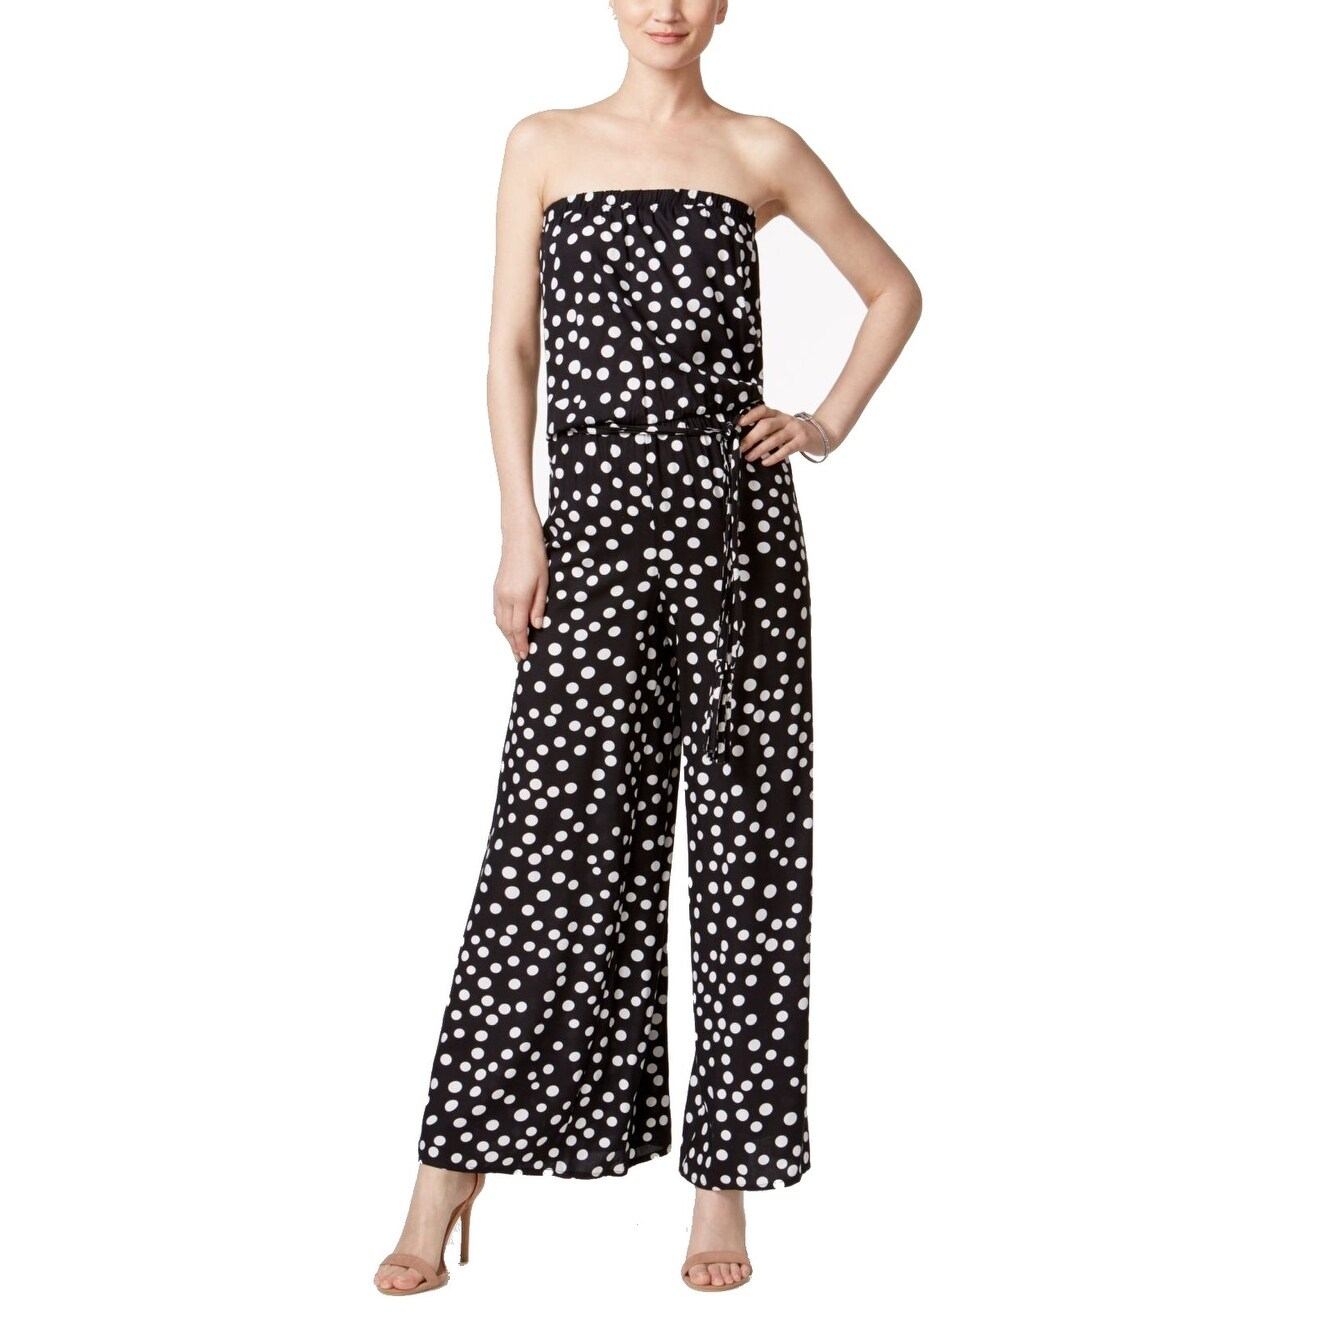 a4f3e1d0468 Buy MSK Rompers   Jumpsuits Online at Overstock